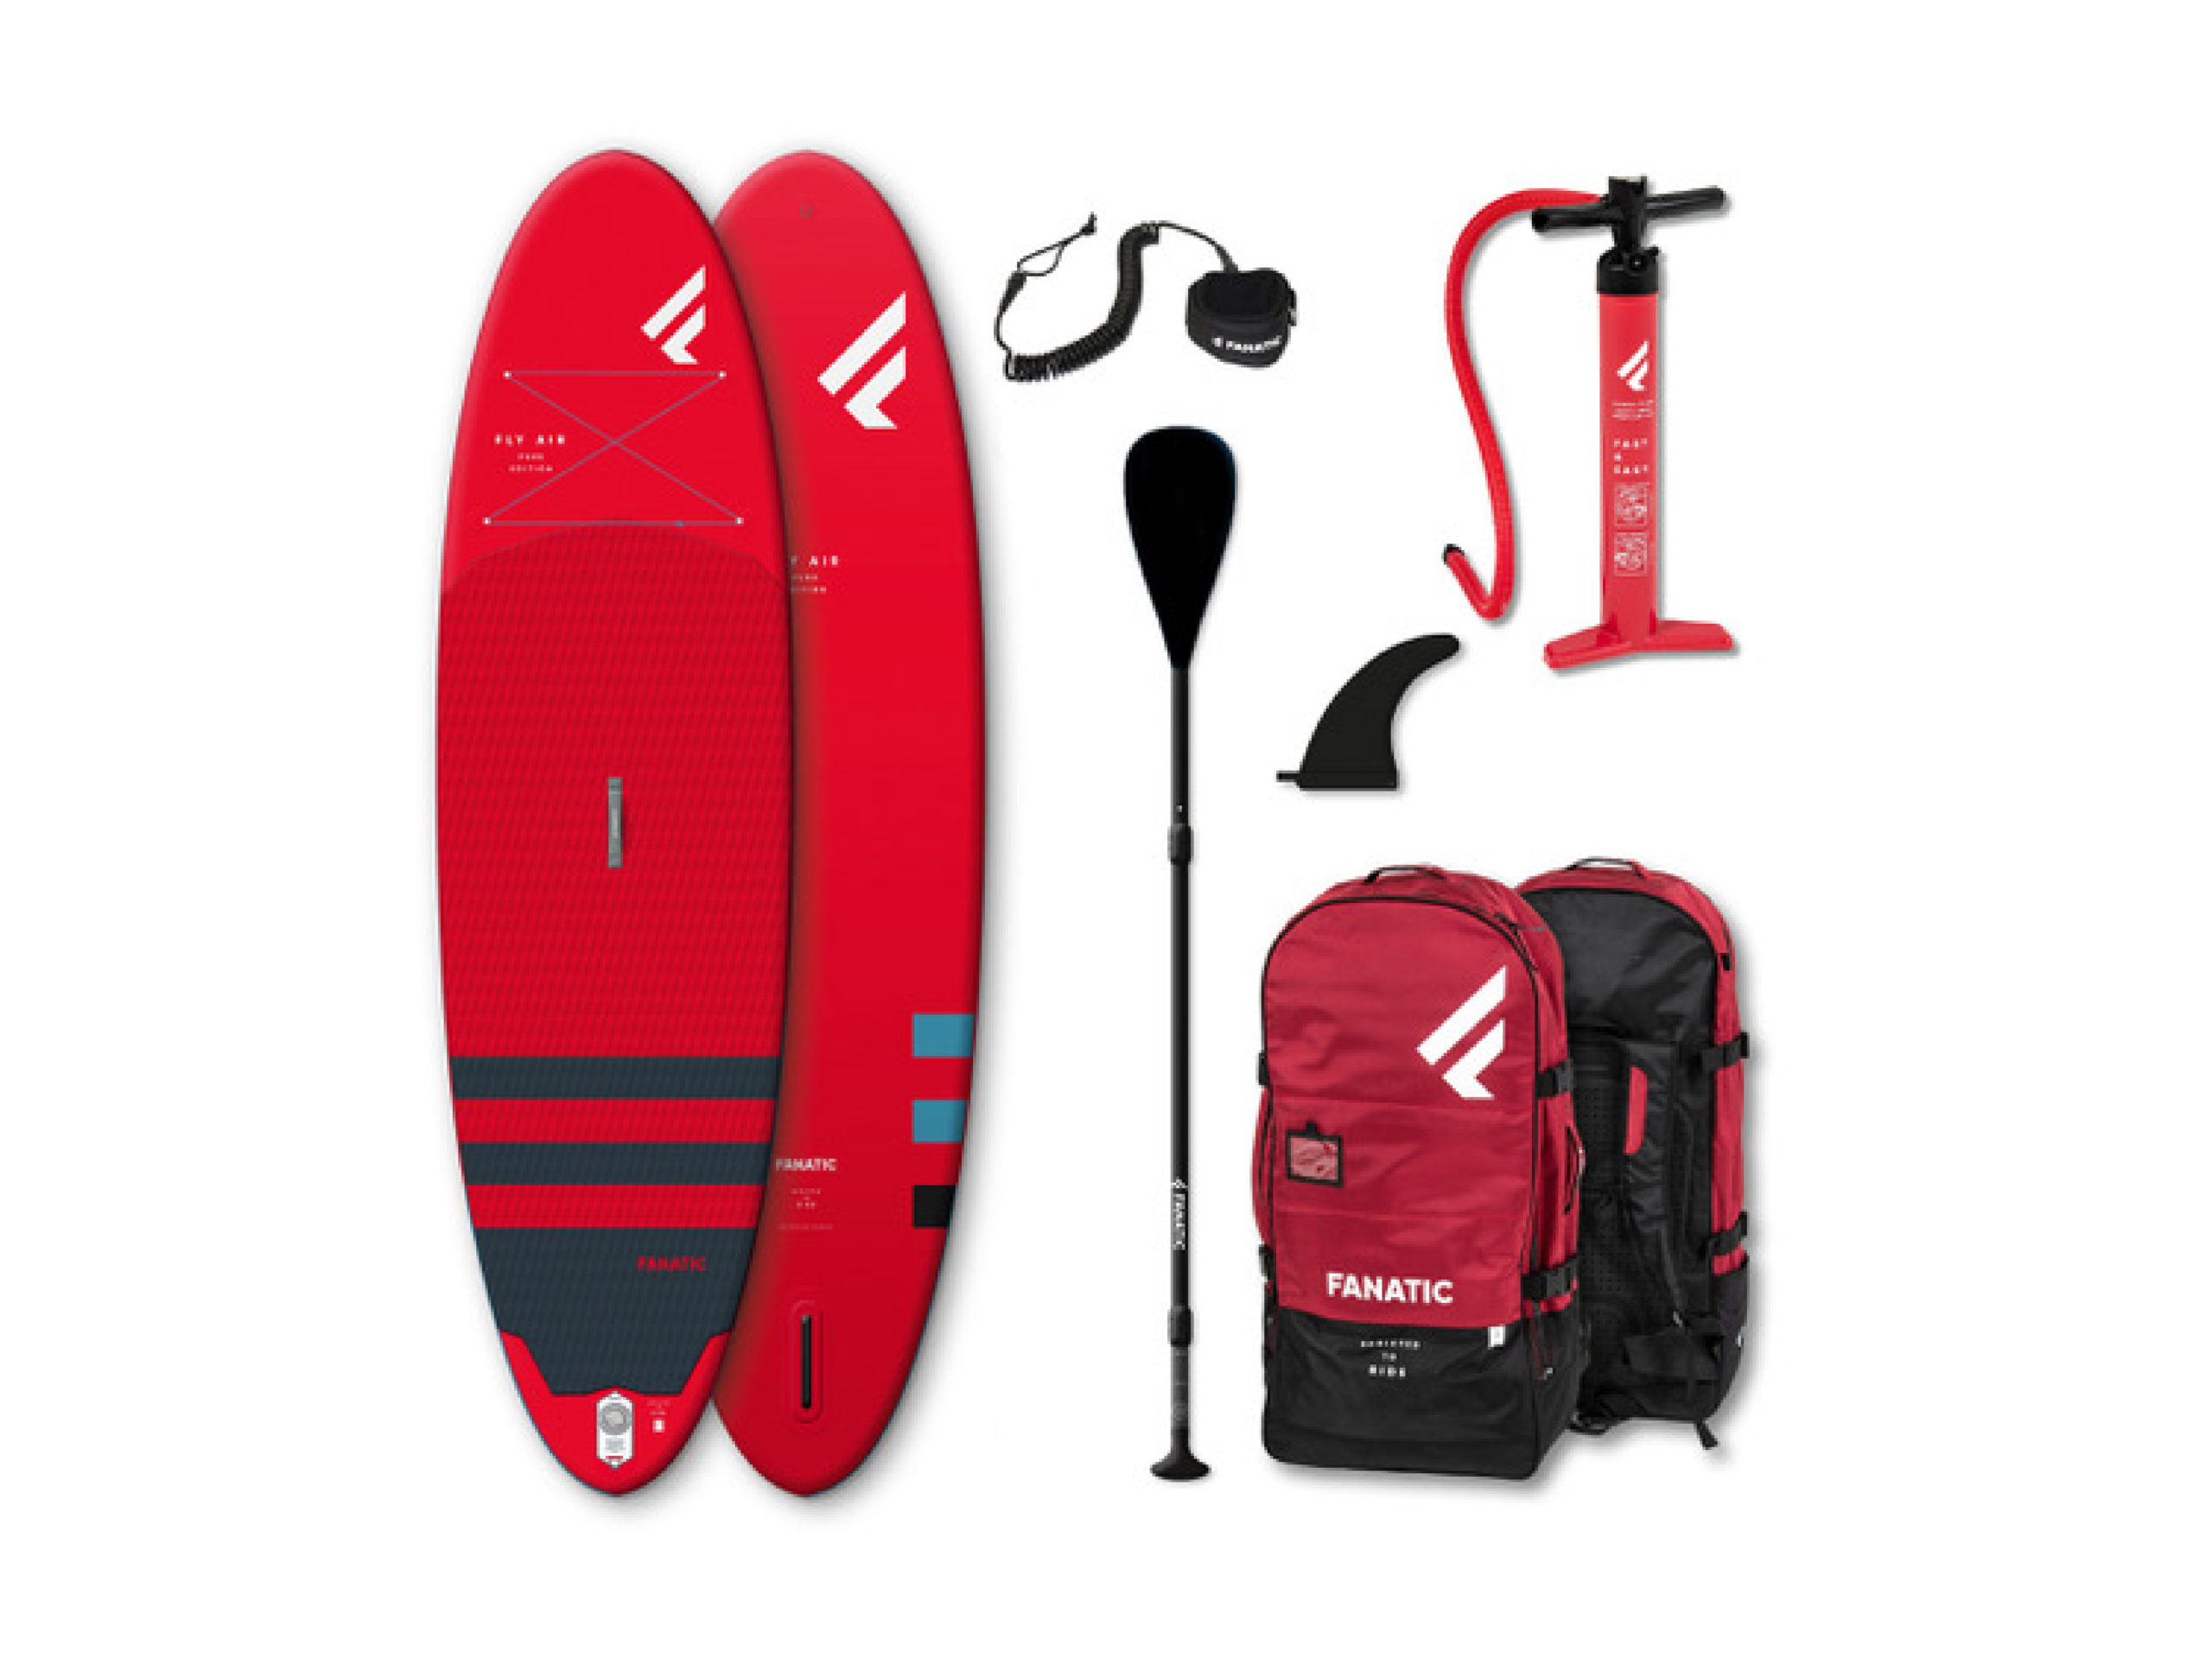 Fanatic Fly Air Red 2021 10'8 Inflatable SUP - 26th July